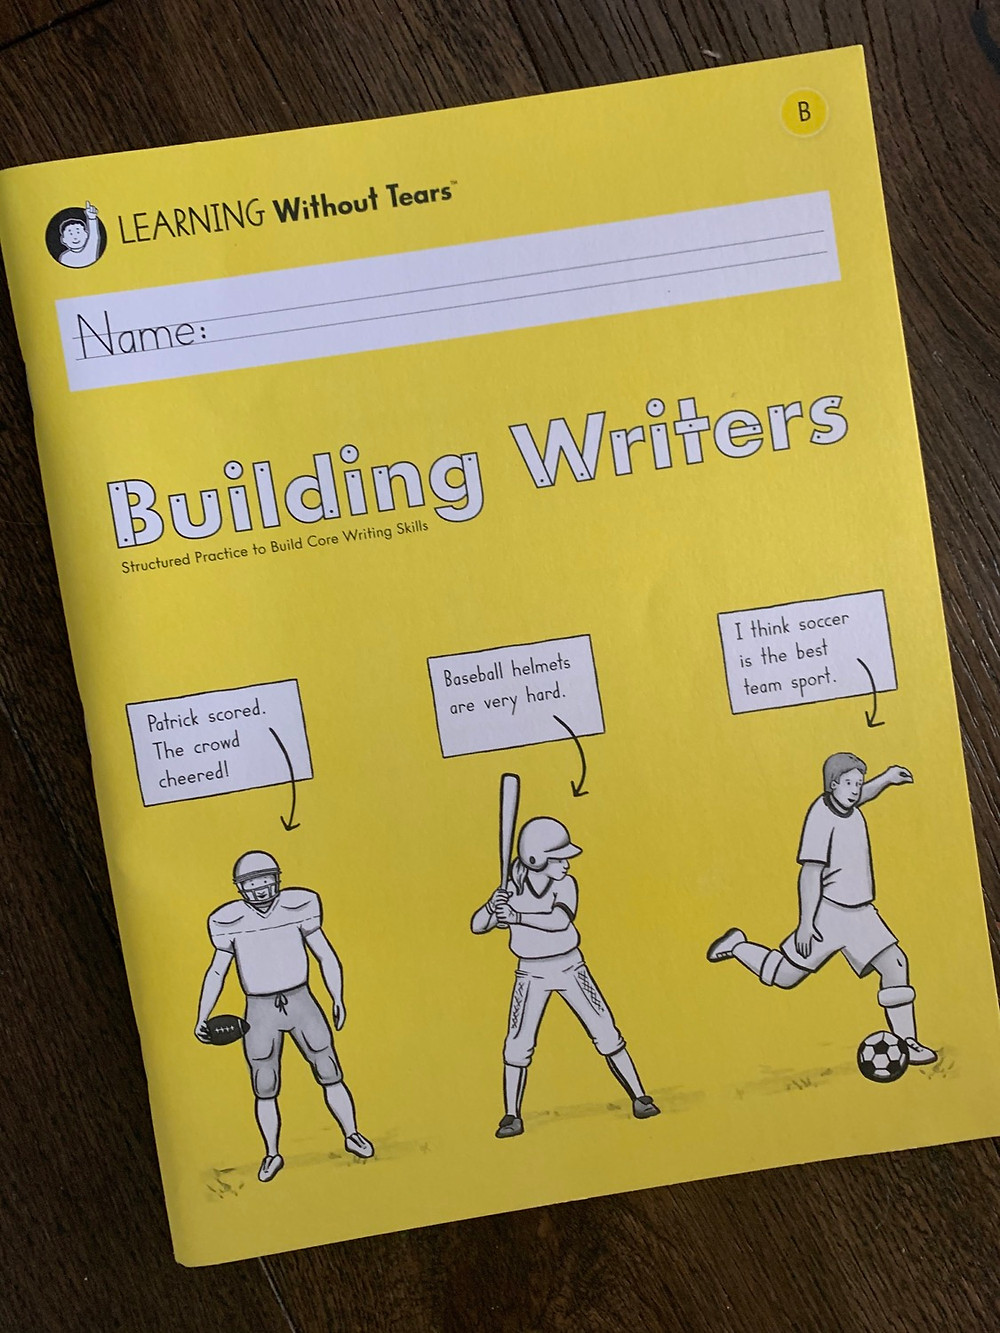 Building Writers Learning Without Tears